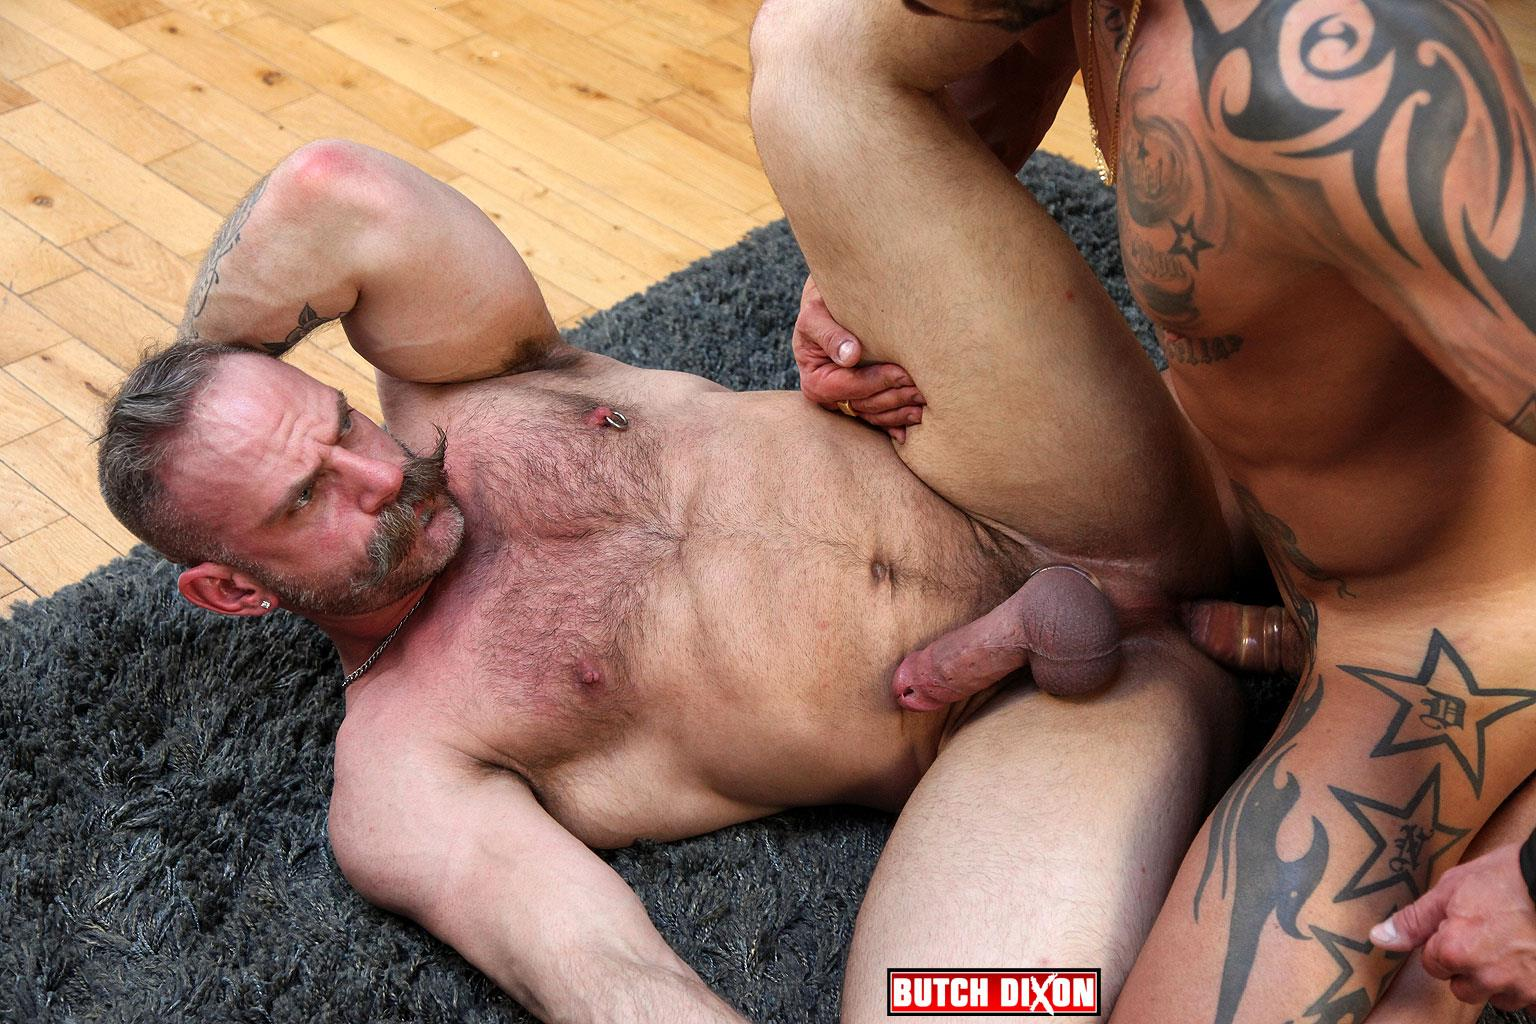 Butch Dixon Samuel Colt and Frank Valencia Hairy Muscle Daddy Getting Fucked By Latino Cock Amateur Gay Porn 12